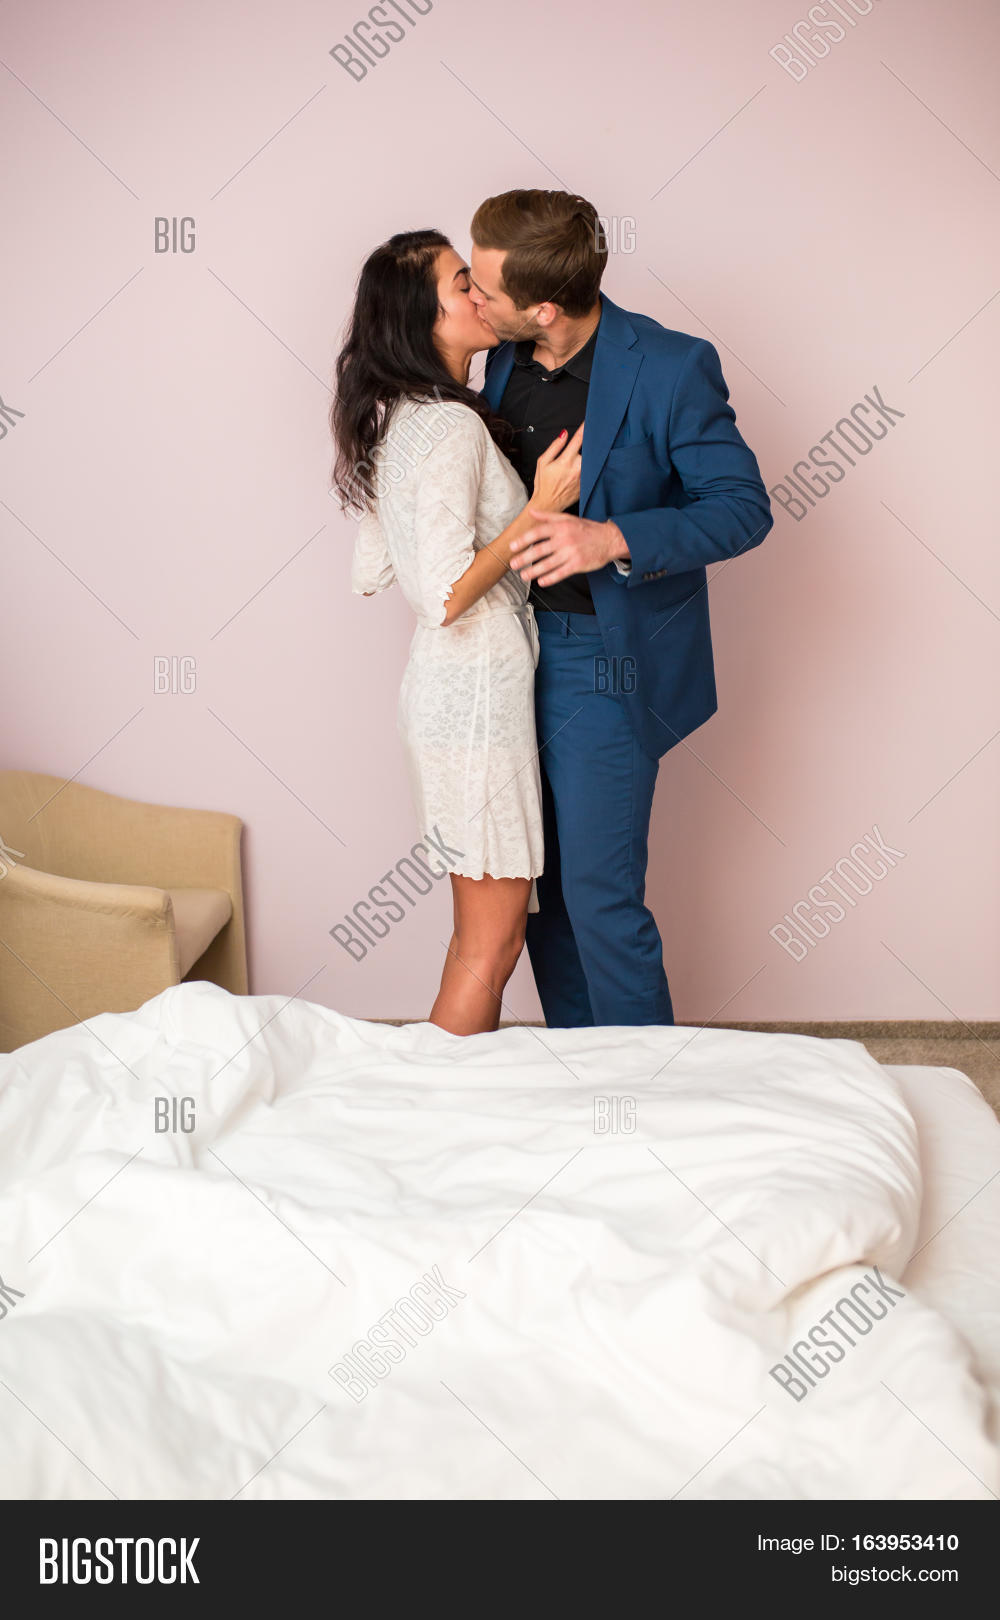 Lovely Couple In Bed Lying In Bedroom Couple Kissing Hugging Bed Bedroom Passion Images Stock Photos